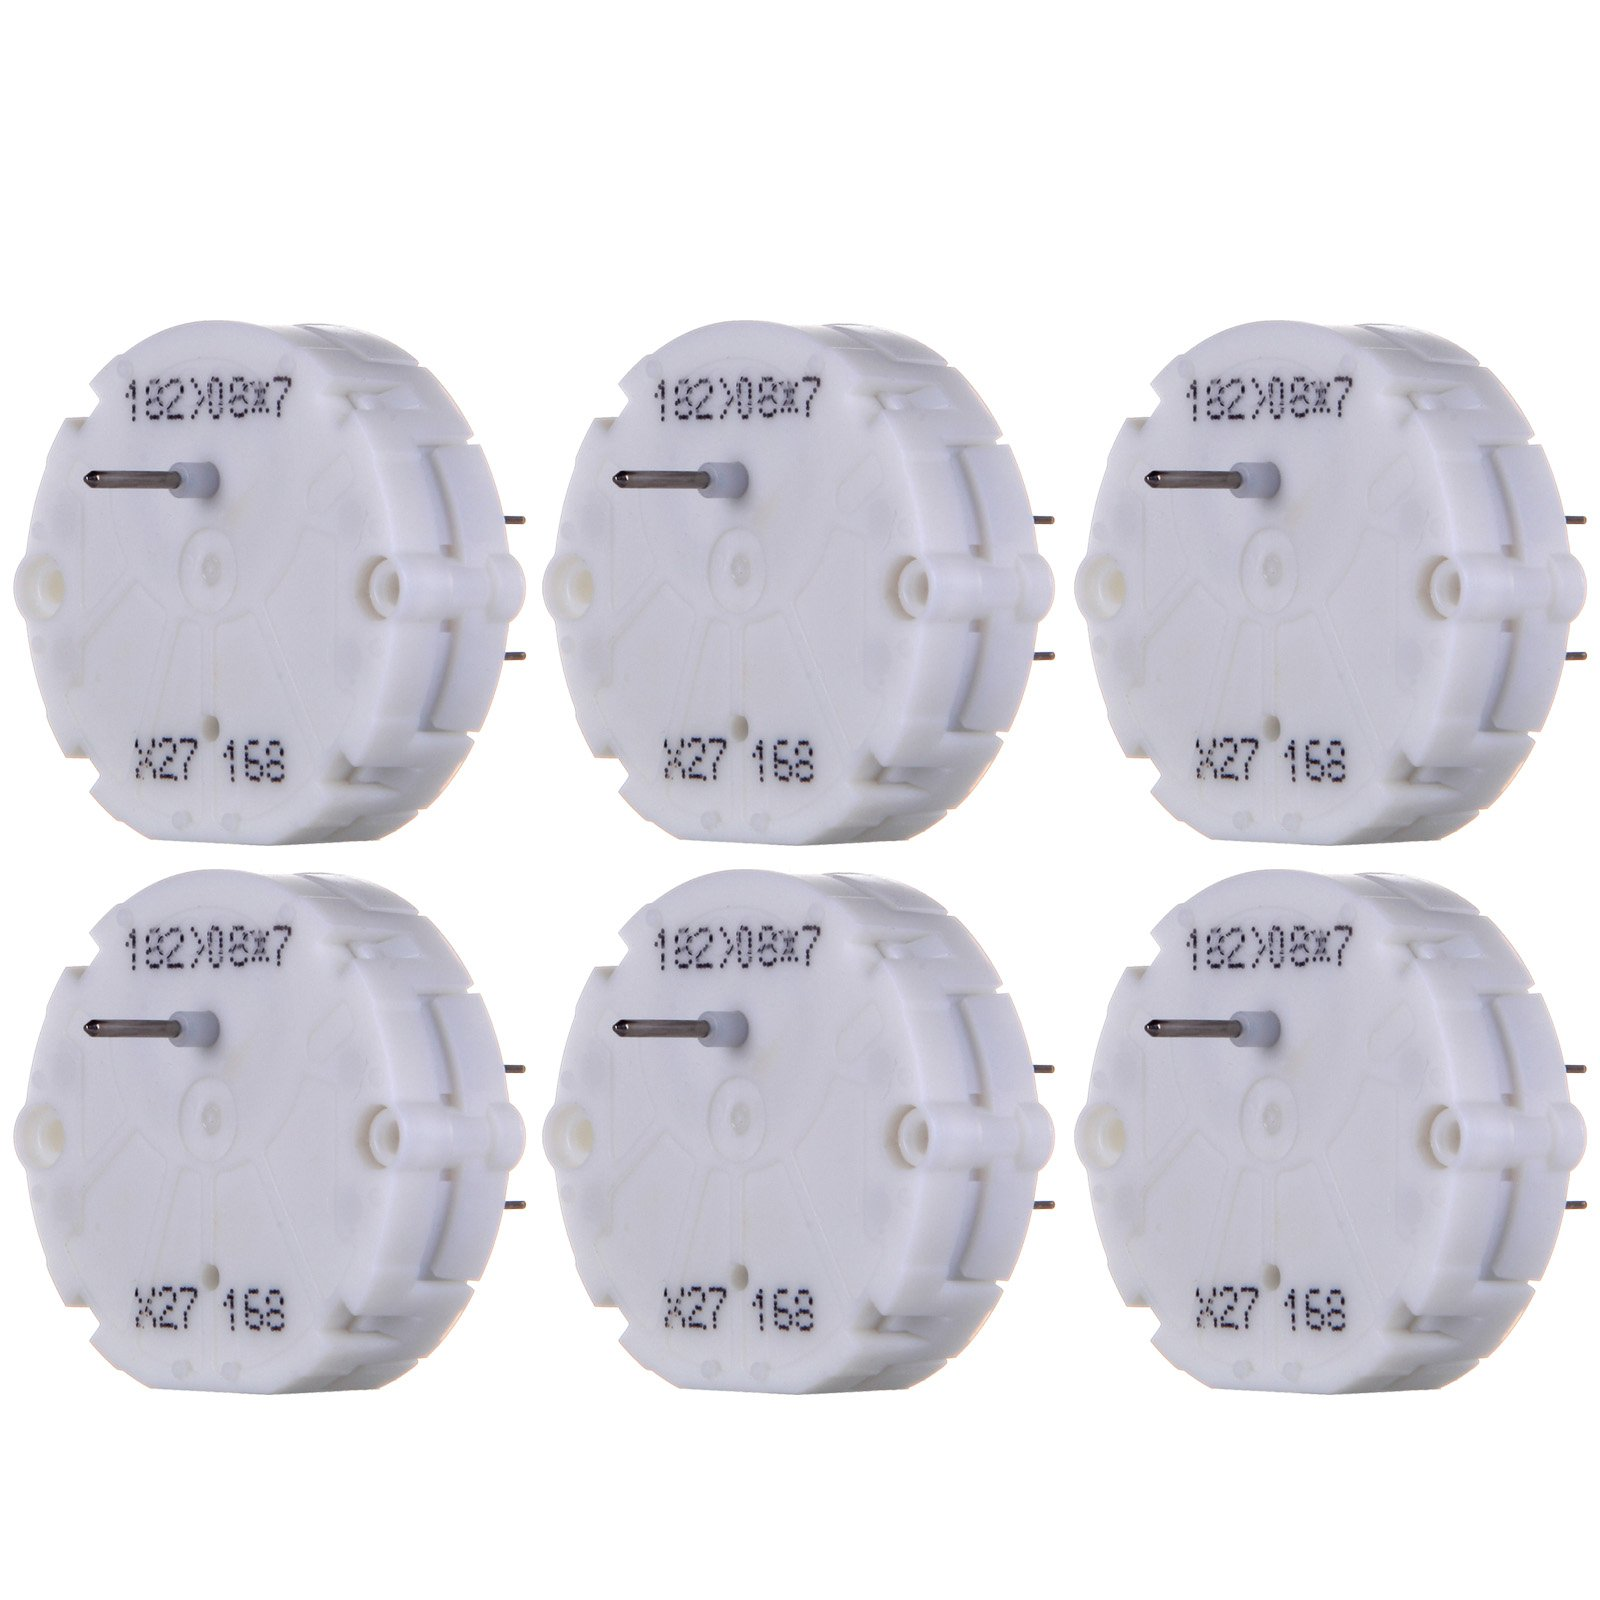 cciyu Stepper Motor X27 168 Instrument Cluster Repair Speedometer Gauge Replacement fit for GM Chevy (6pack) by cciyu